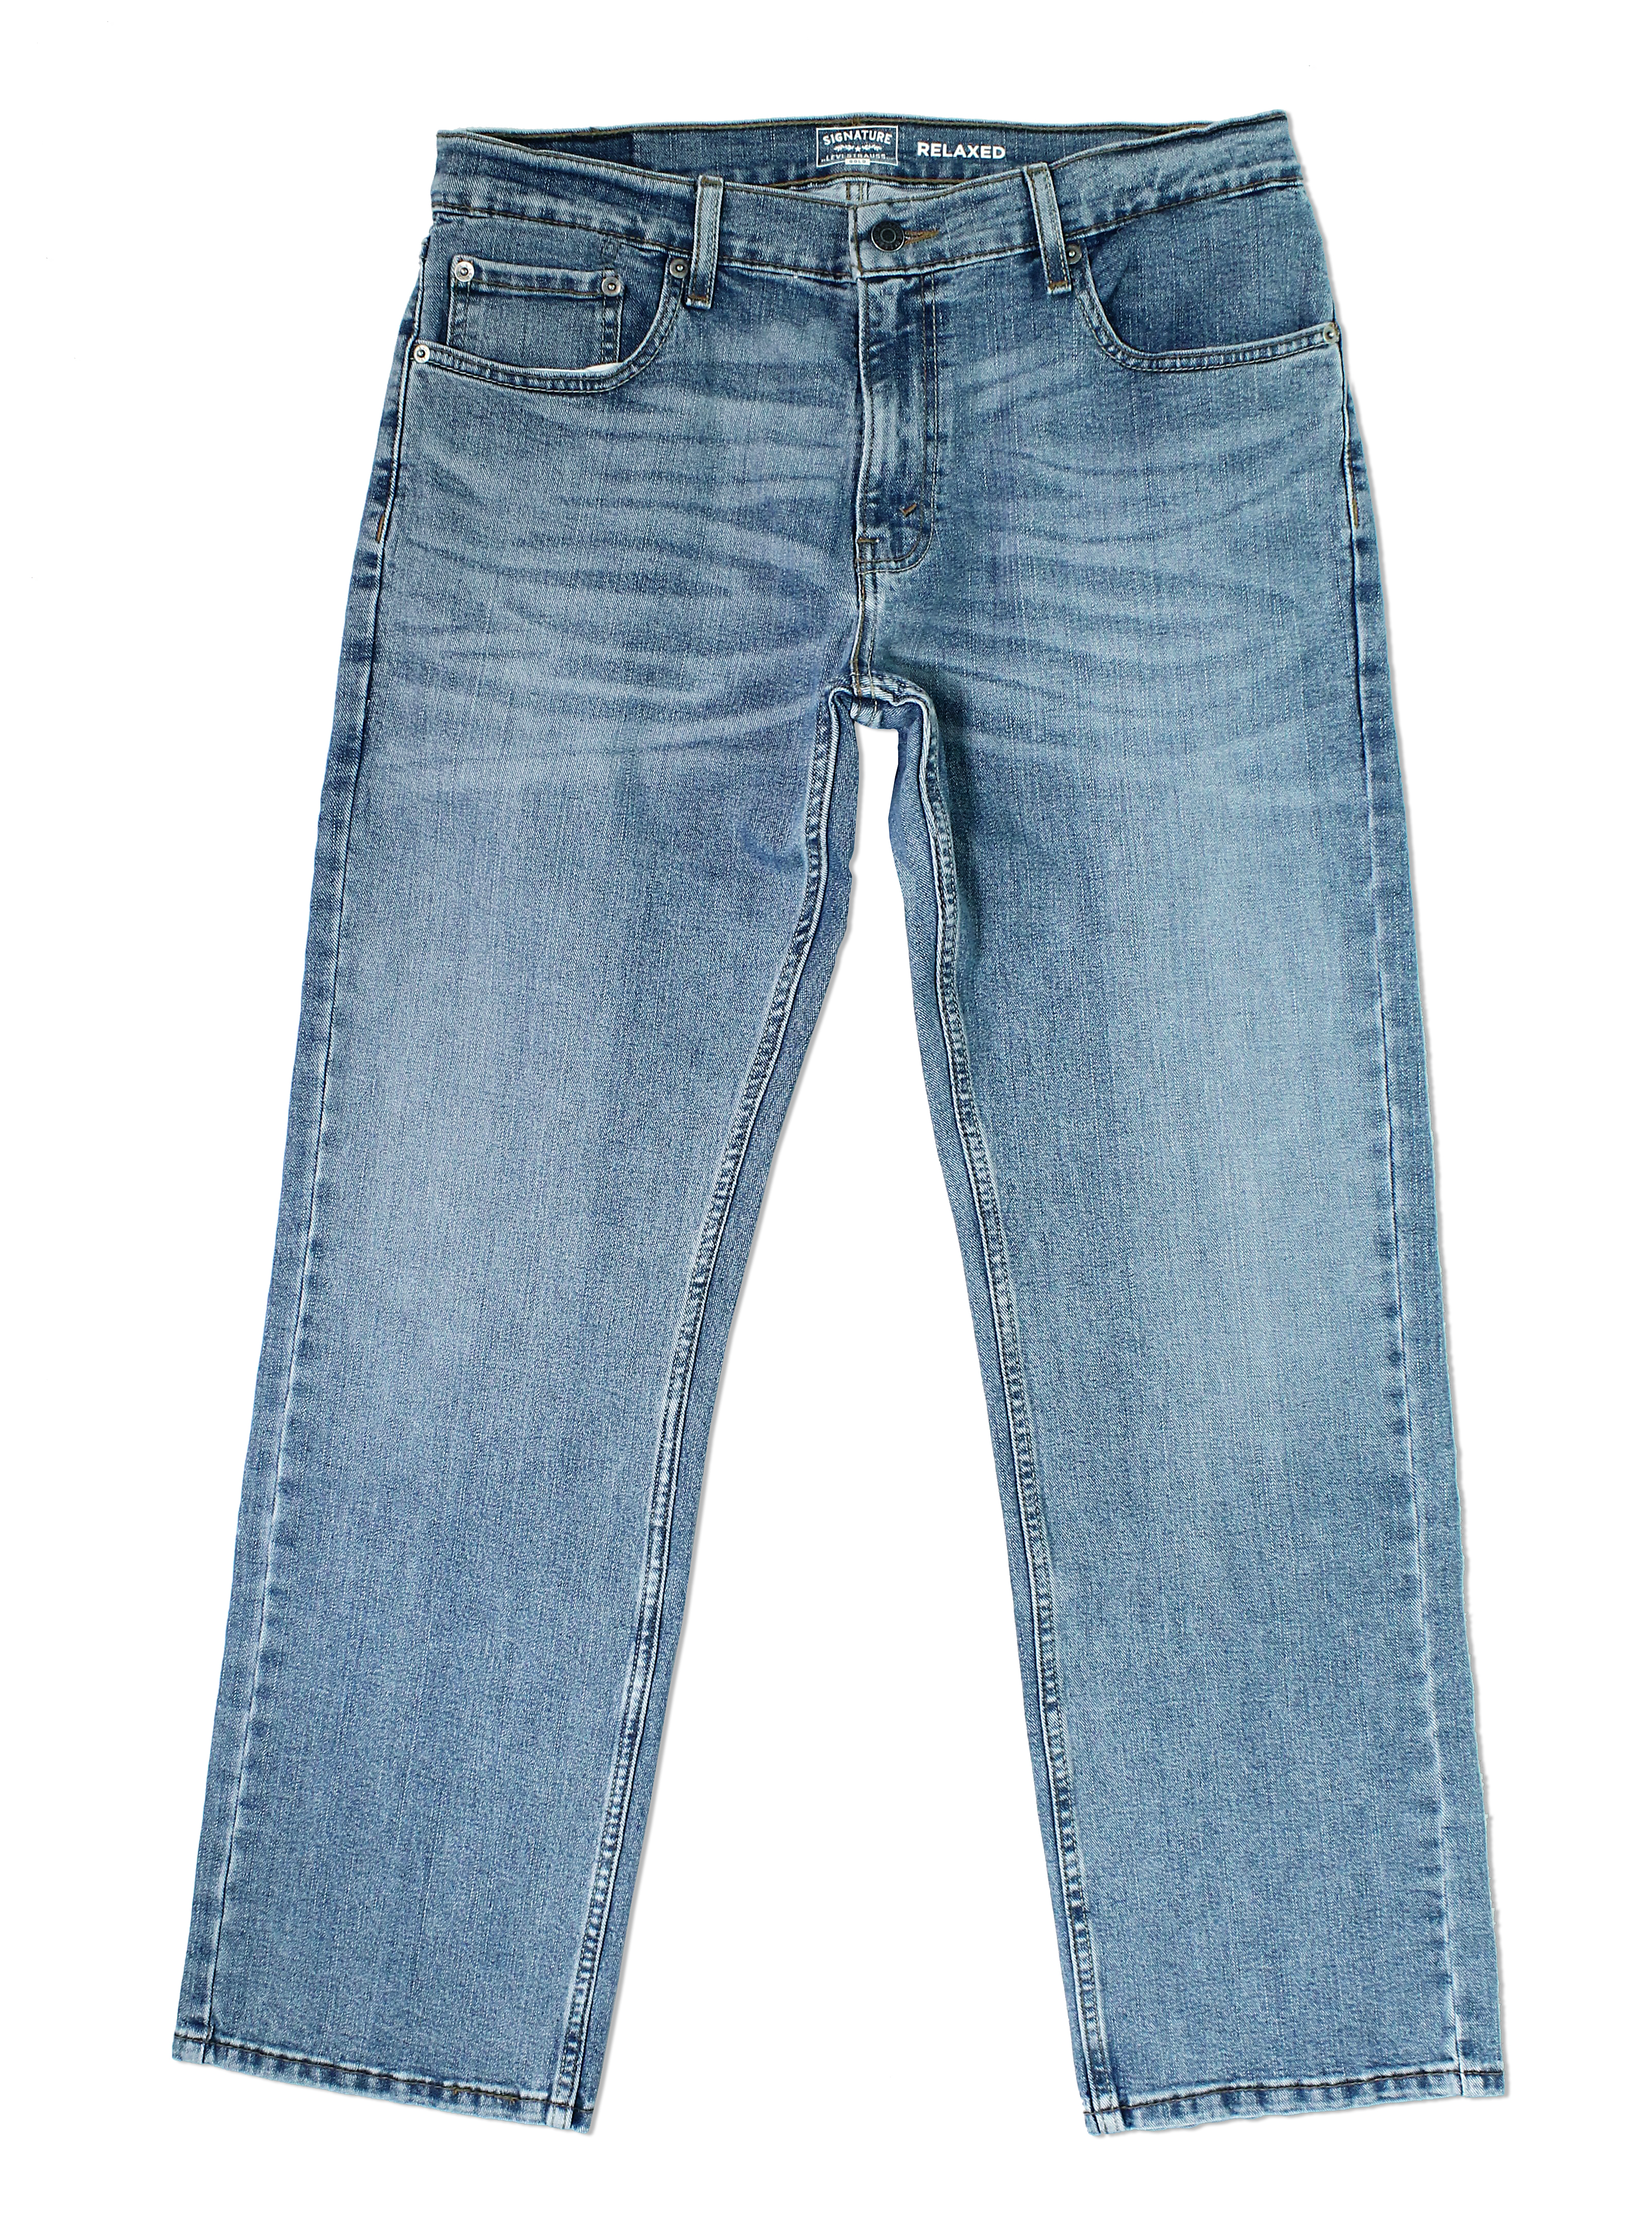 Signature-By-Levi-Strauss-amp-Co-Gold-Label-Titan-Blue-Men-Relaxed-Fit-Jeans thumbnail 3